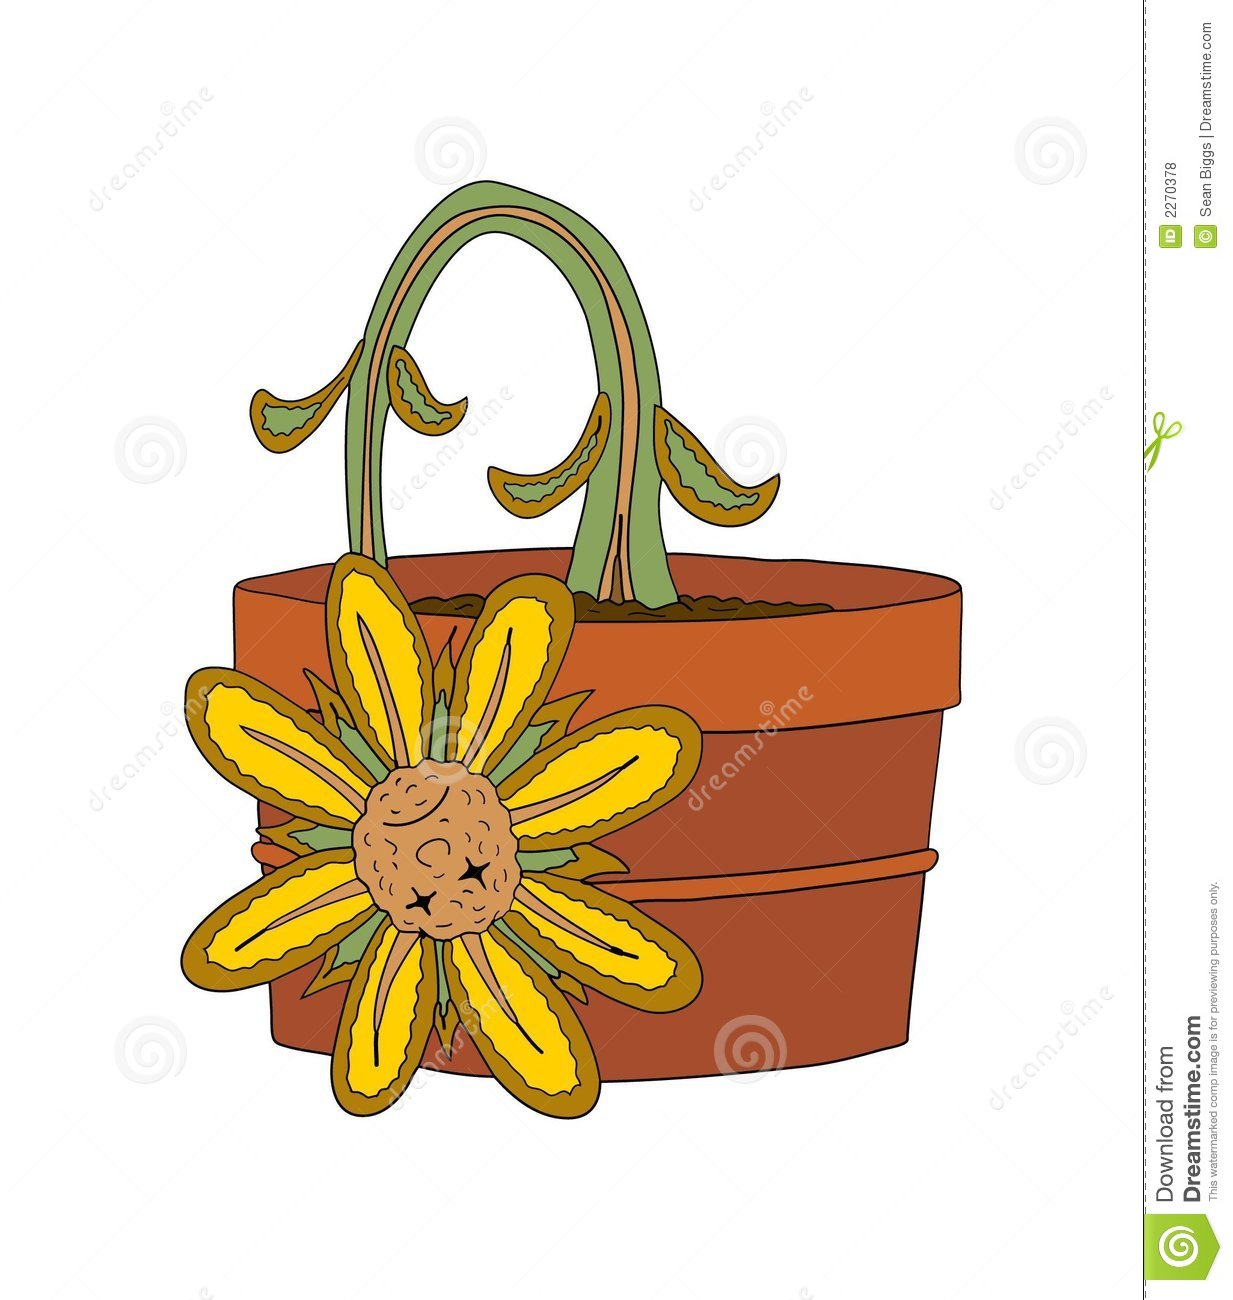 clipart dead flowers - photo #5